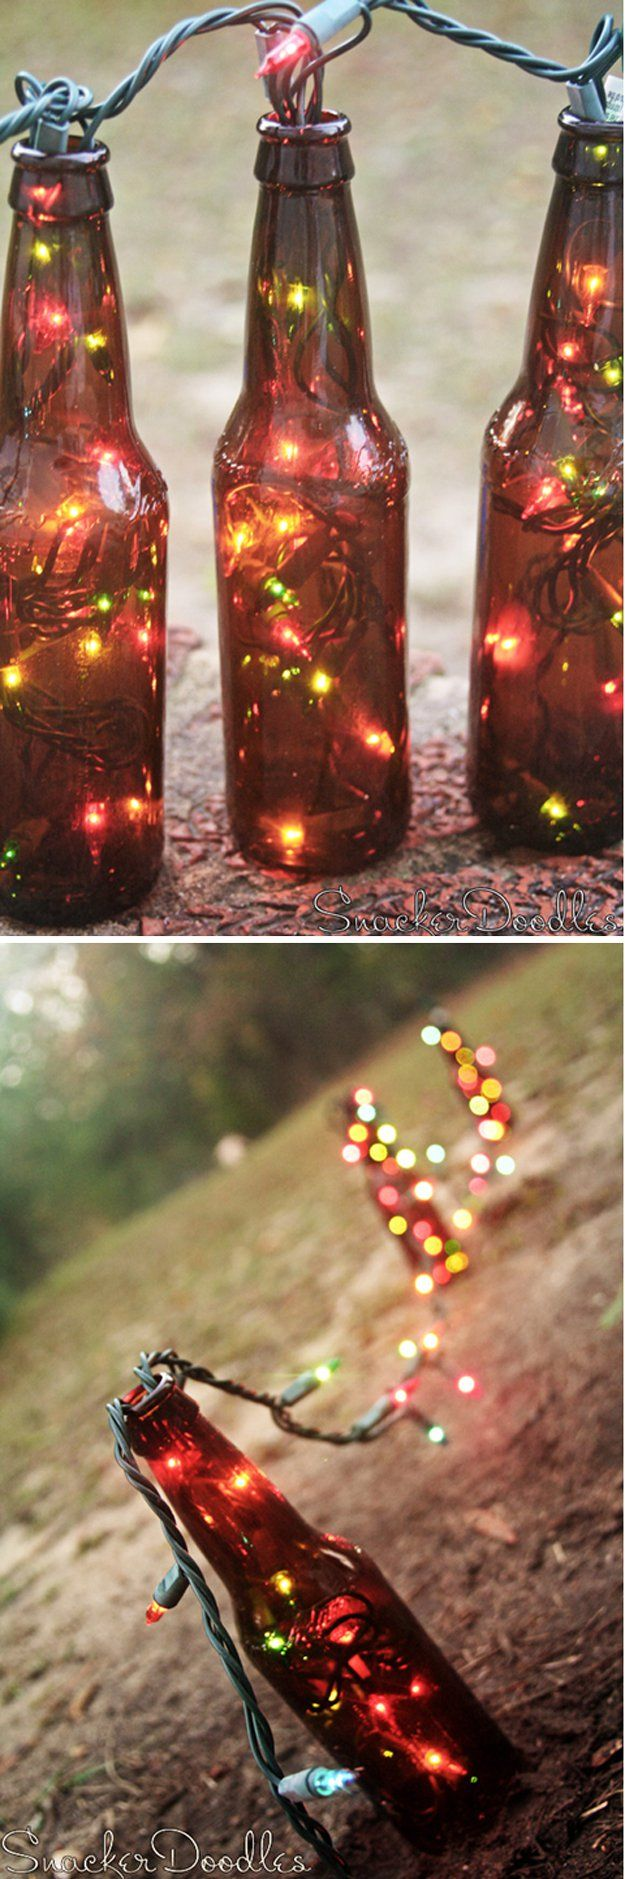 Repurpose your empties and turn them into festive Beer Bottles Lights for parties. Get more creative uses for beer bottles from @diyready.